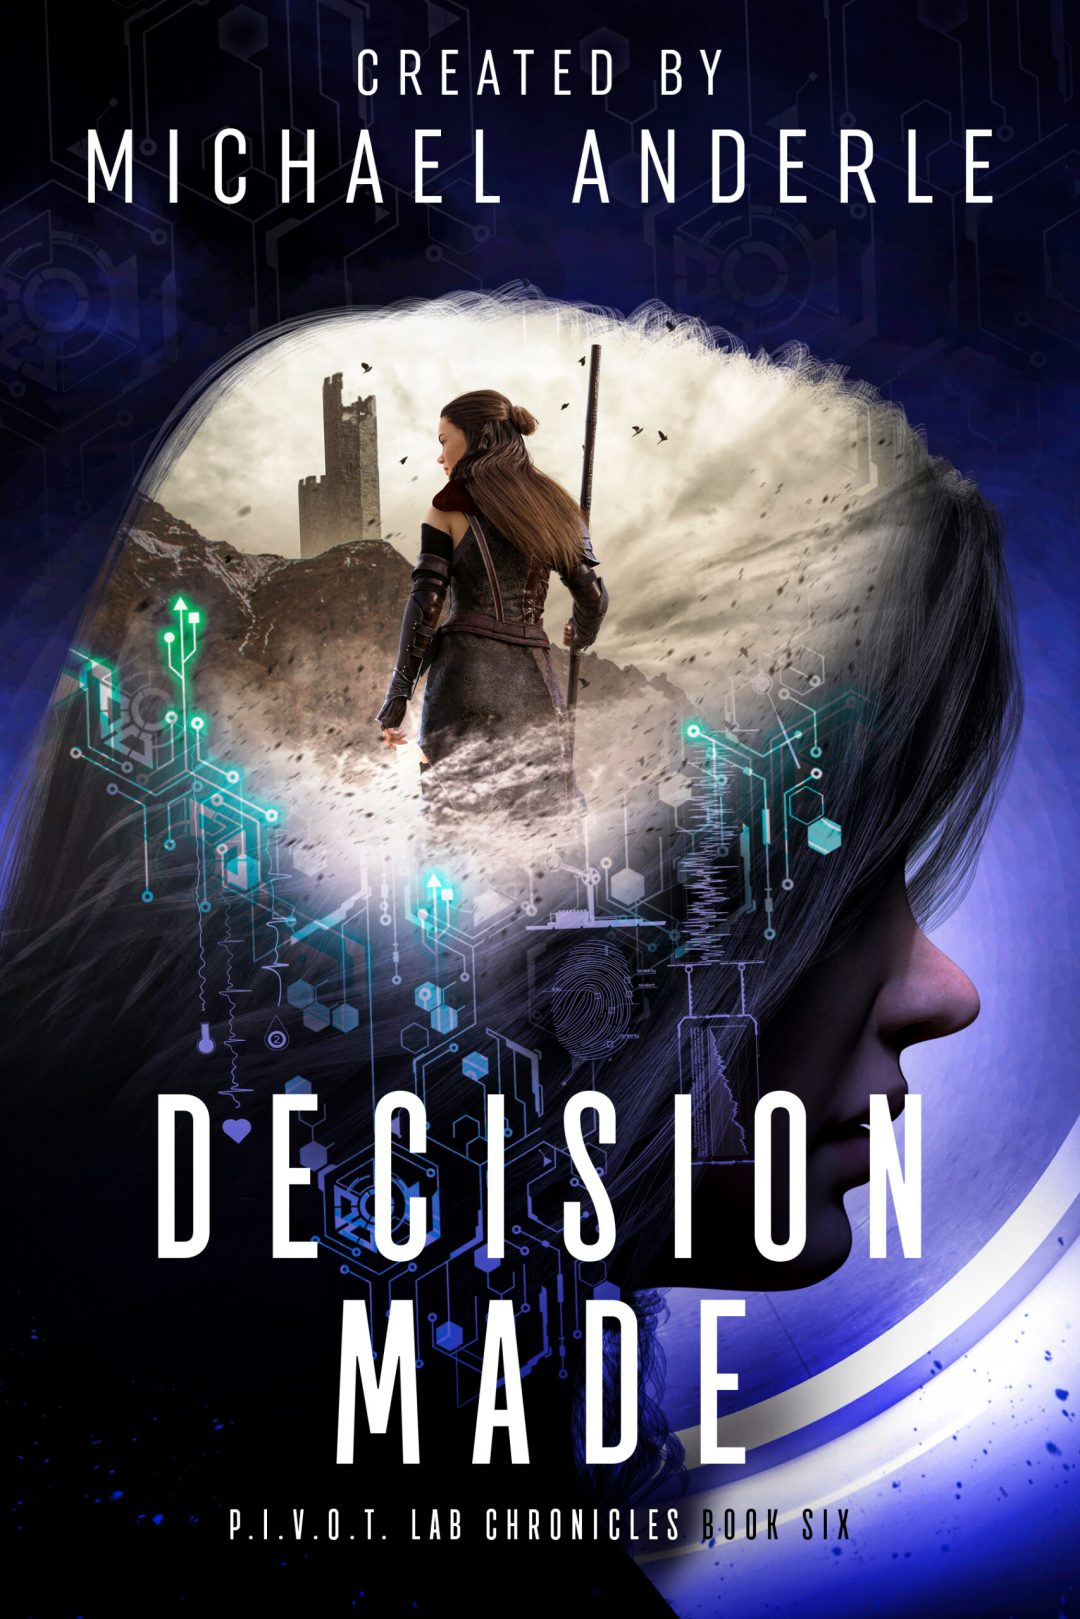 Decisions made e-book cover